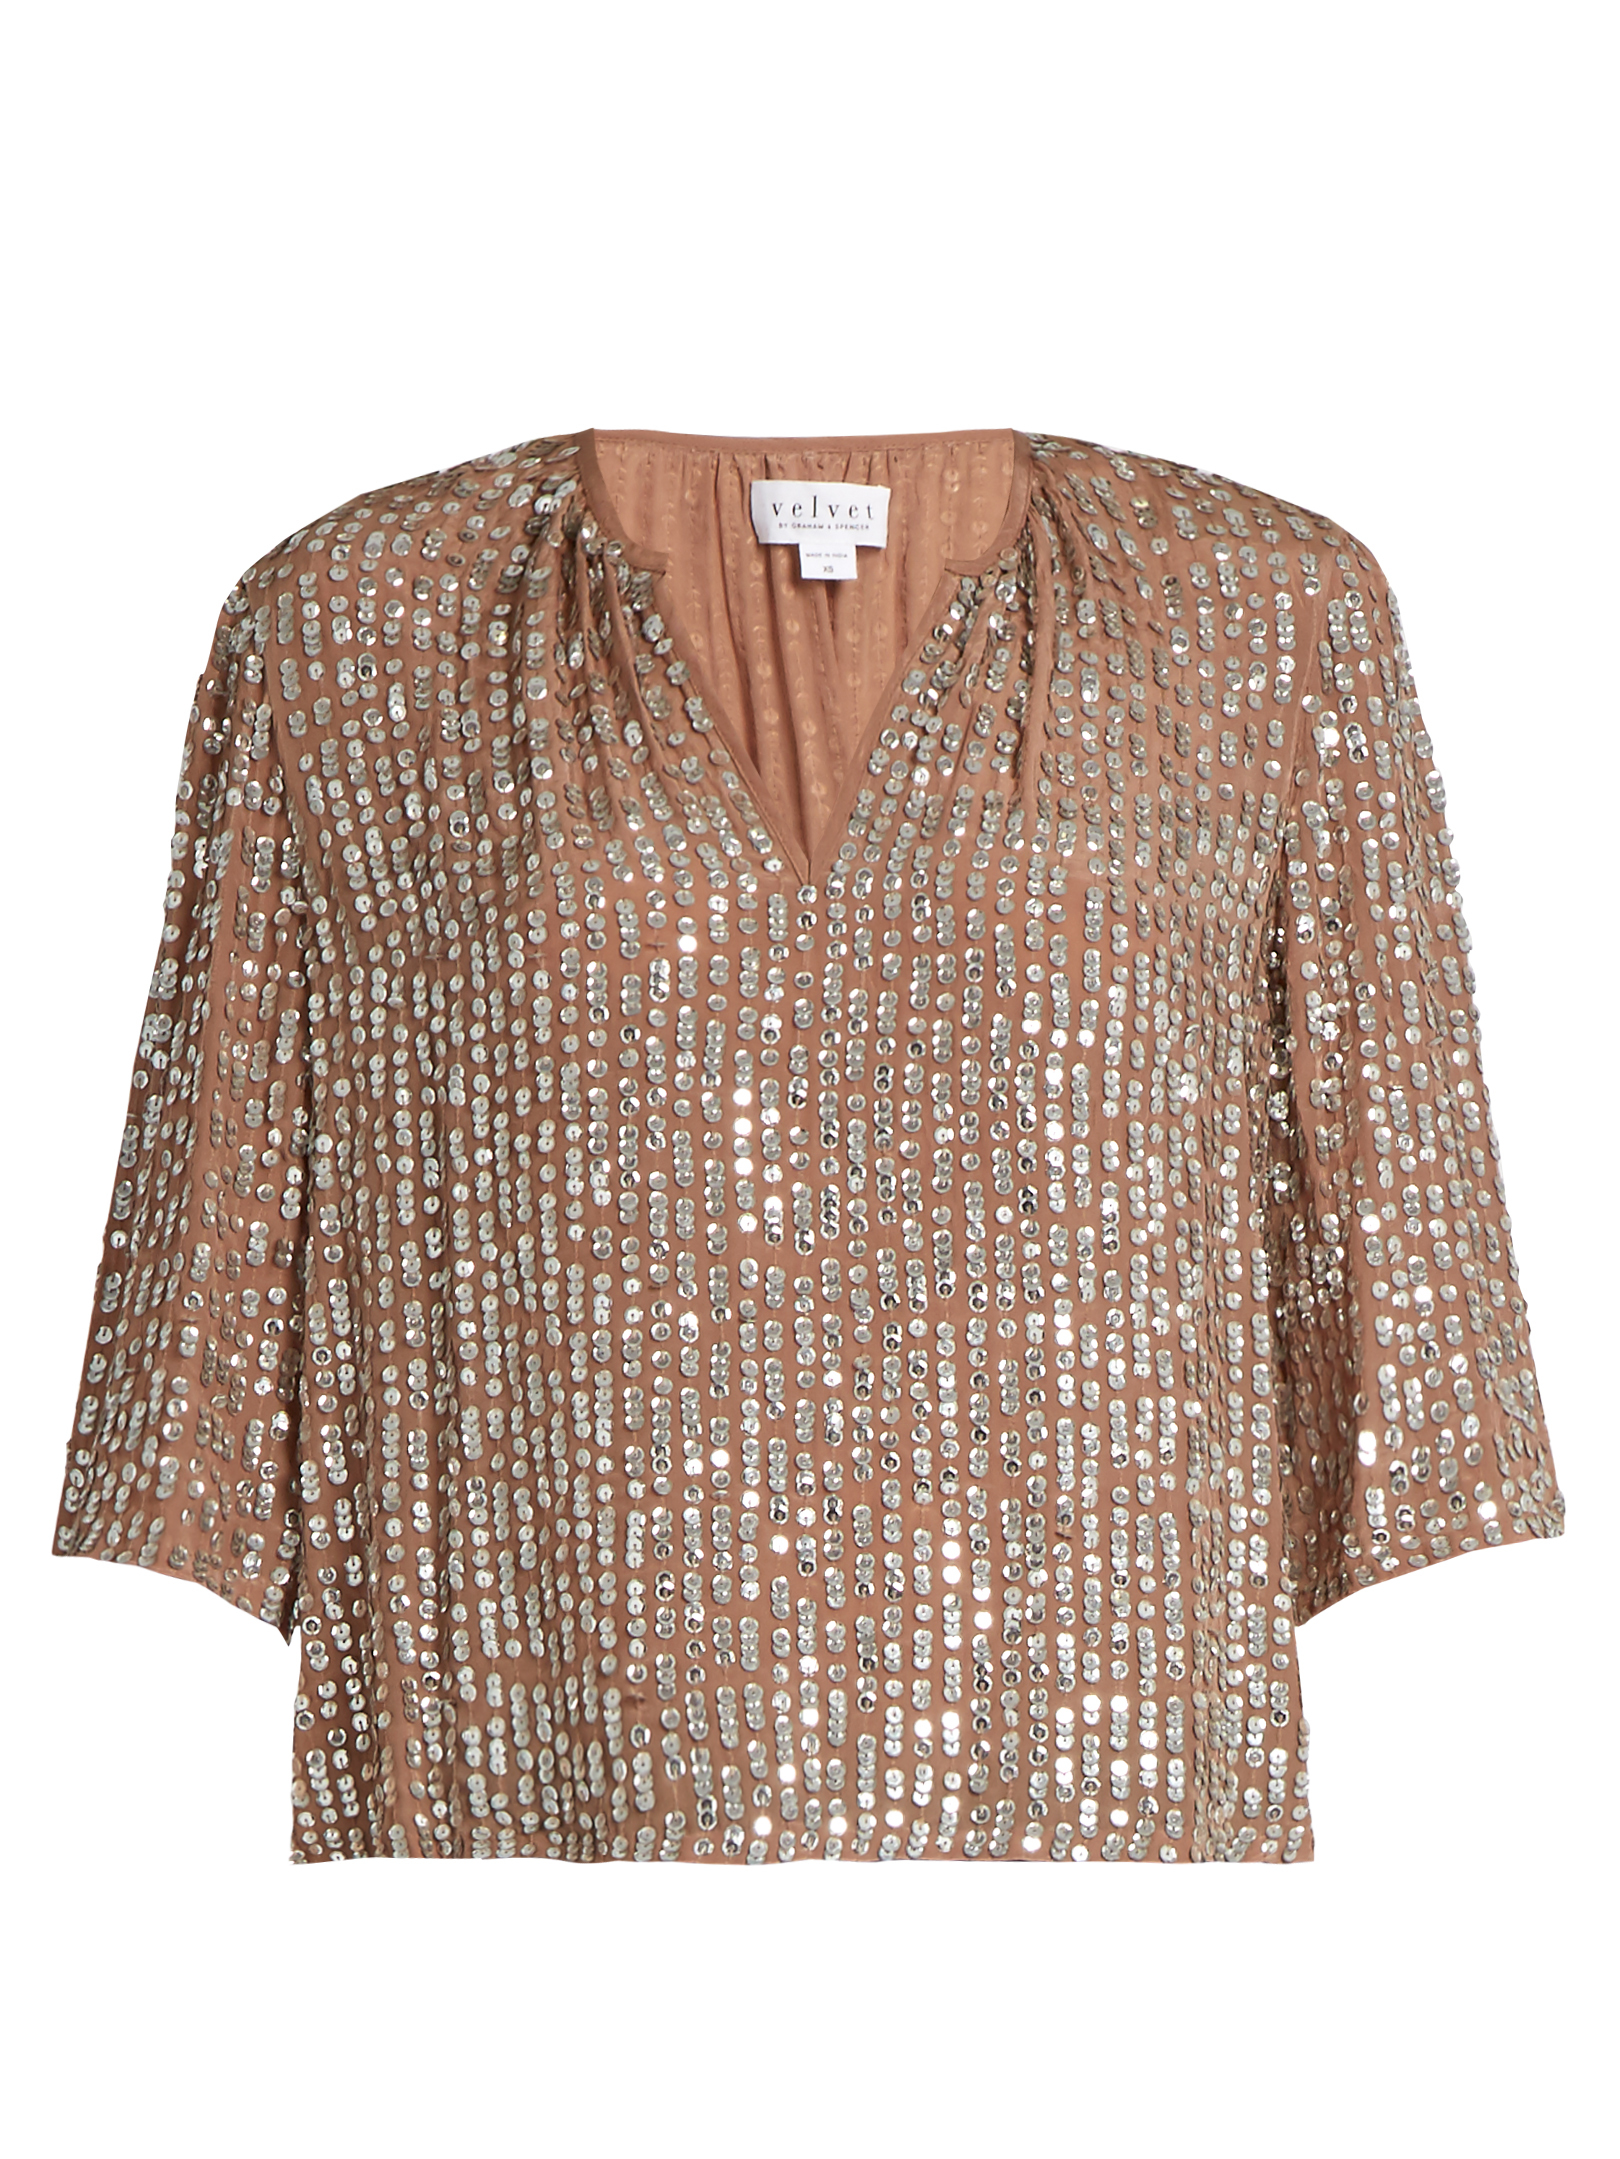 Wenn Embellished V-neck Top